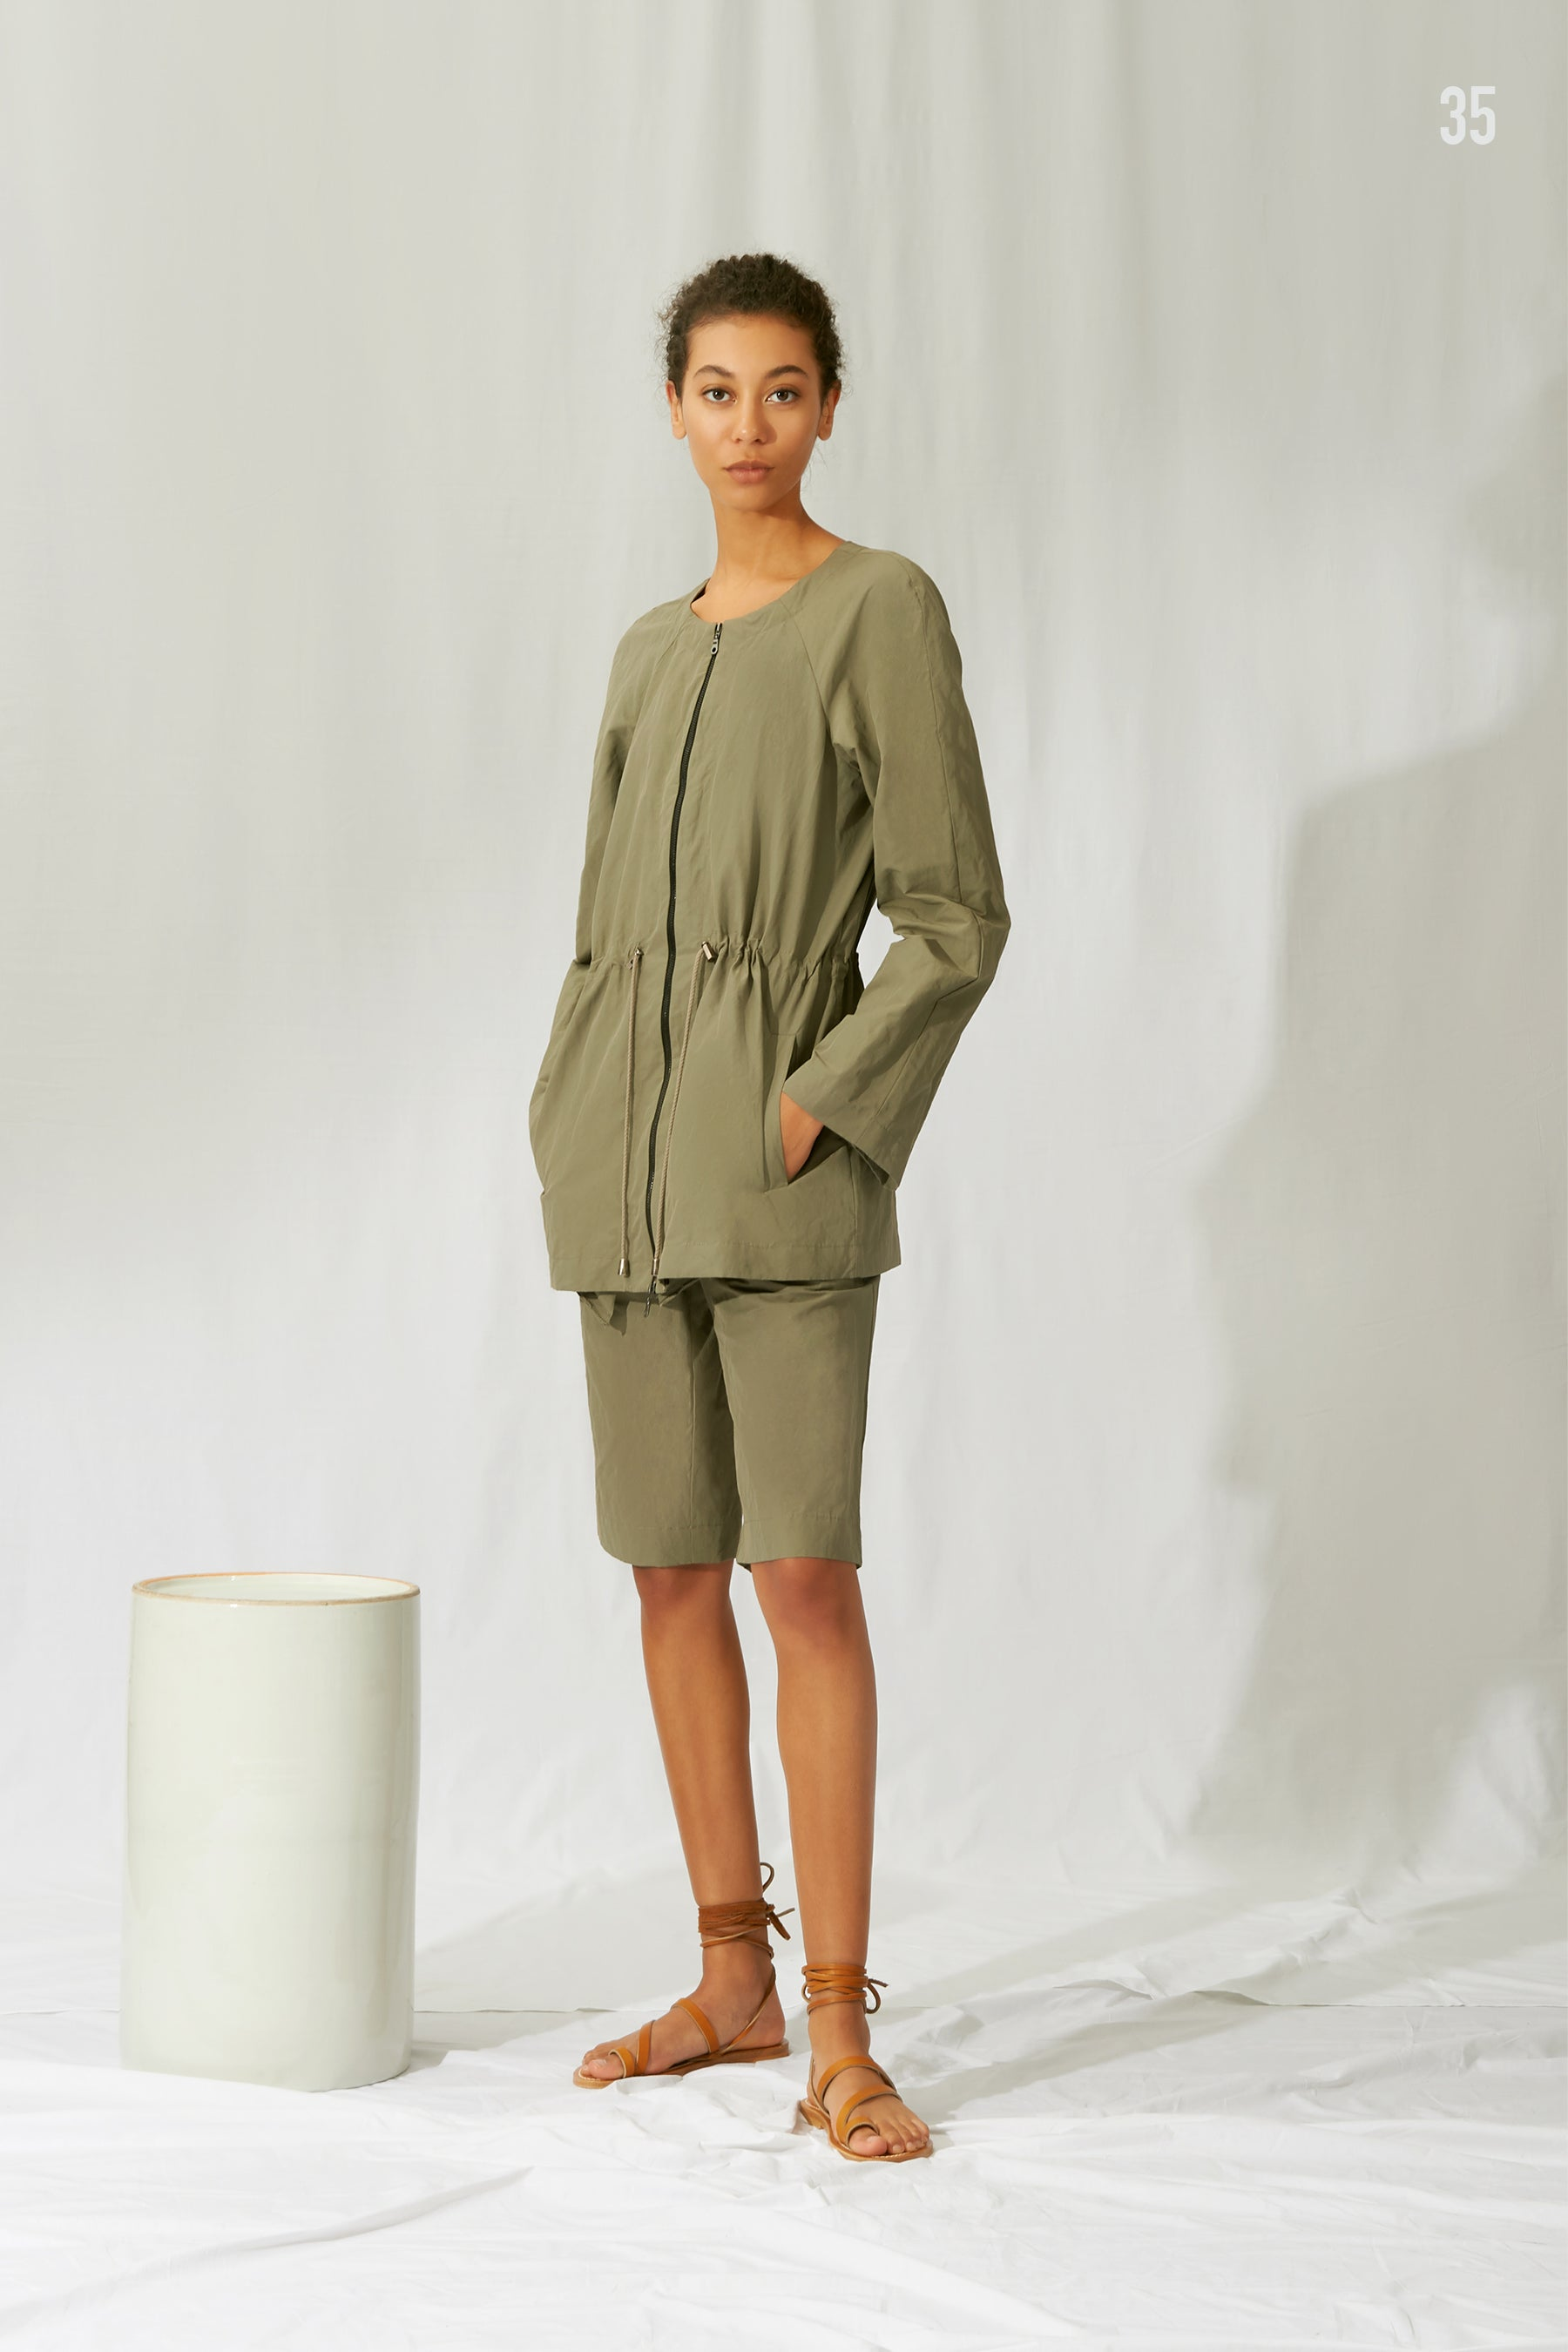 Kal Rieman Spring 2020 Lookbook Look 35